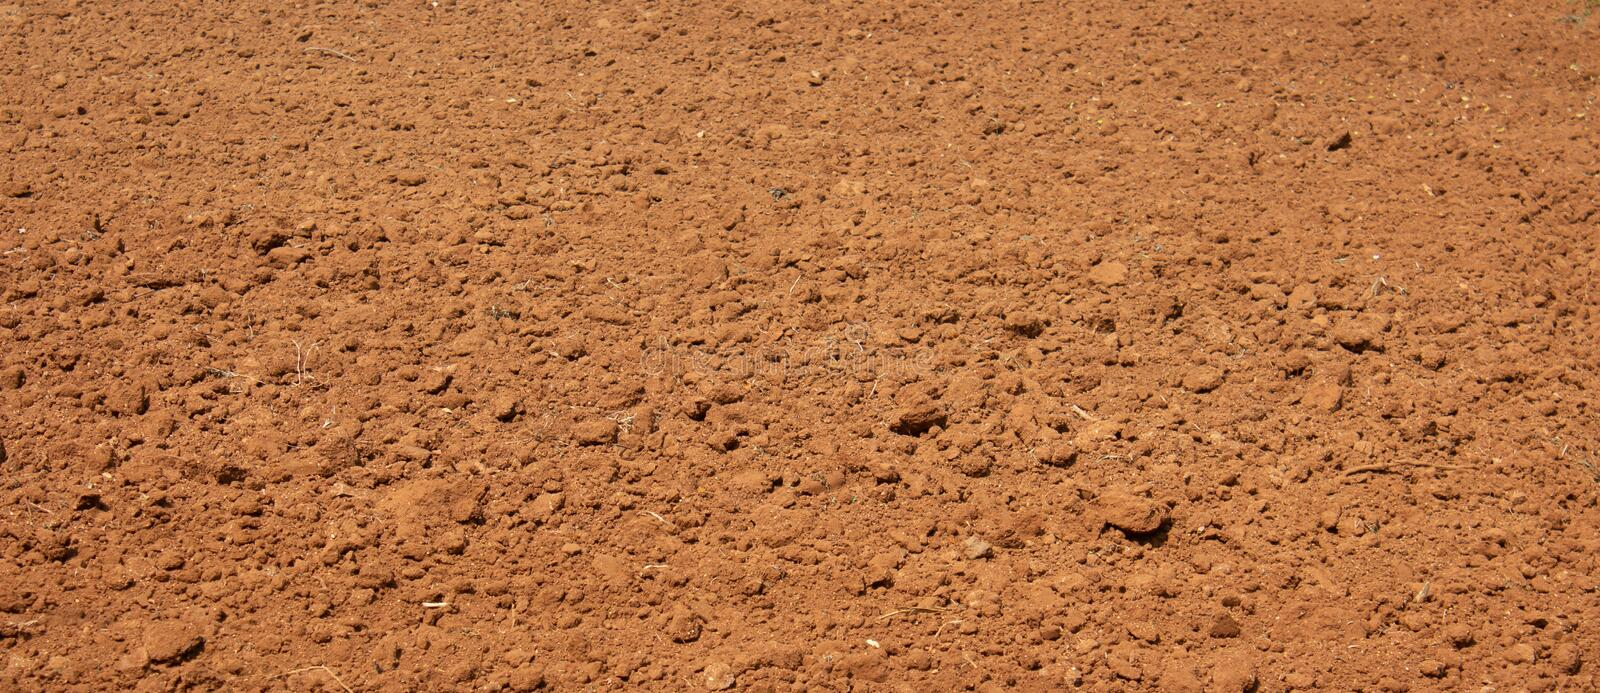 Ploughed land ready for cultivation, Kolar, Karnataka, India. Agricultural field ready for sowing.  stock images